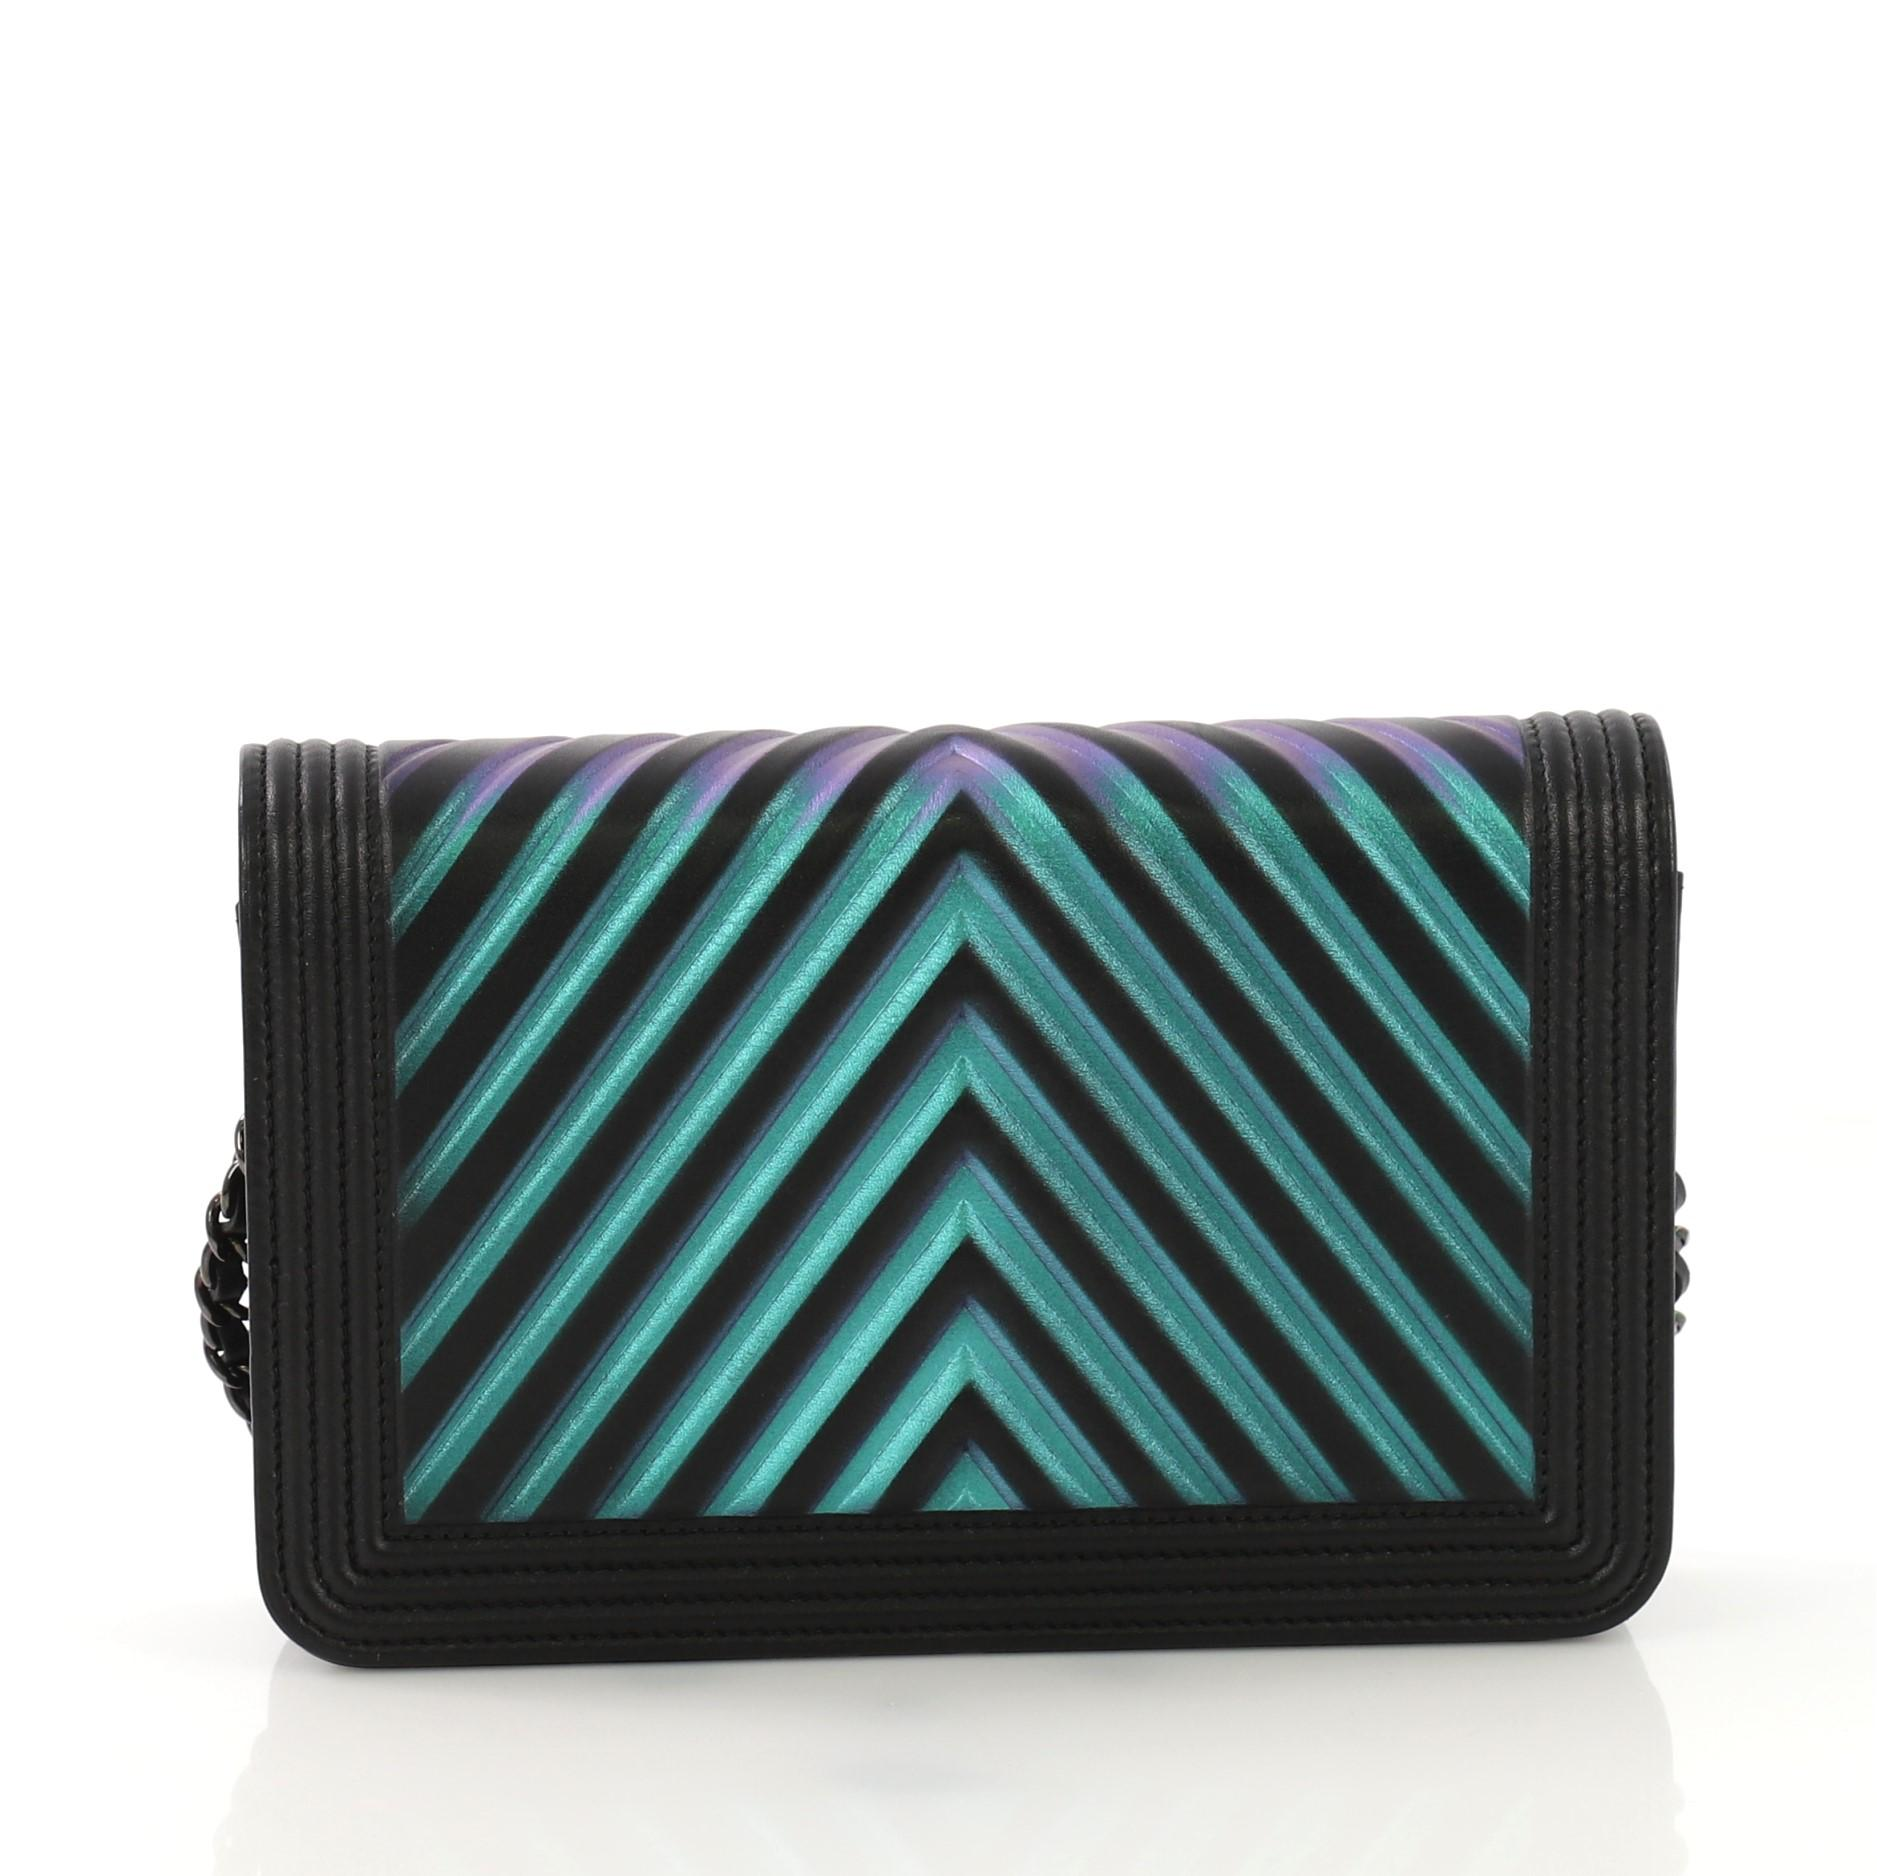 51712928f38e8f Chanel Boy Wallet on Chain Chevron Painted Calfskin For Sale at 1stdibs